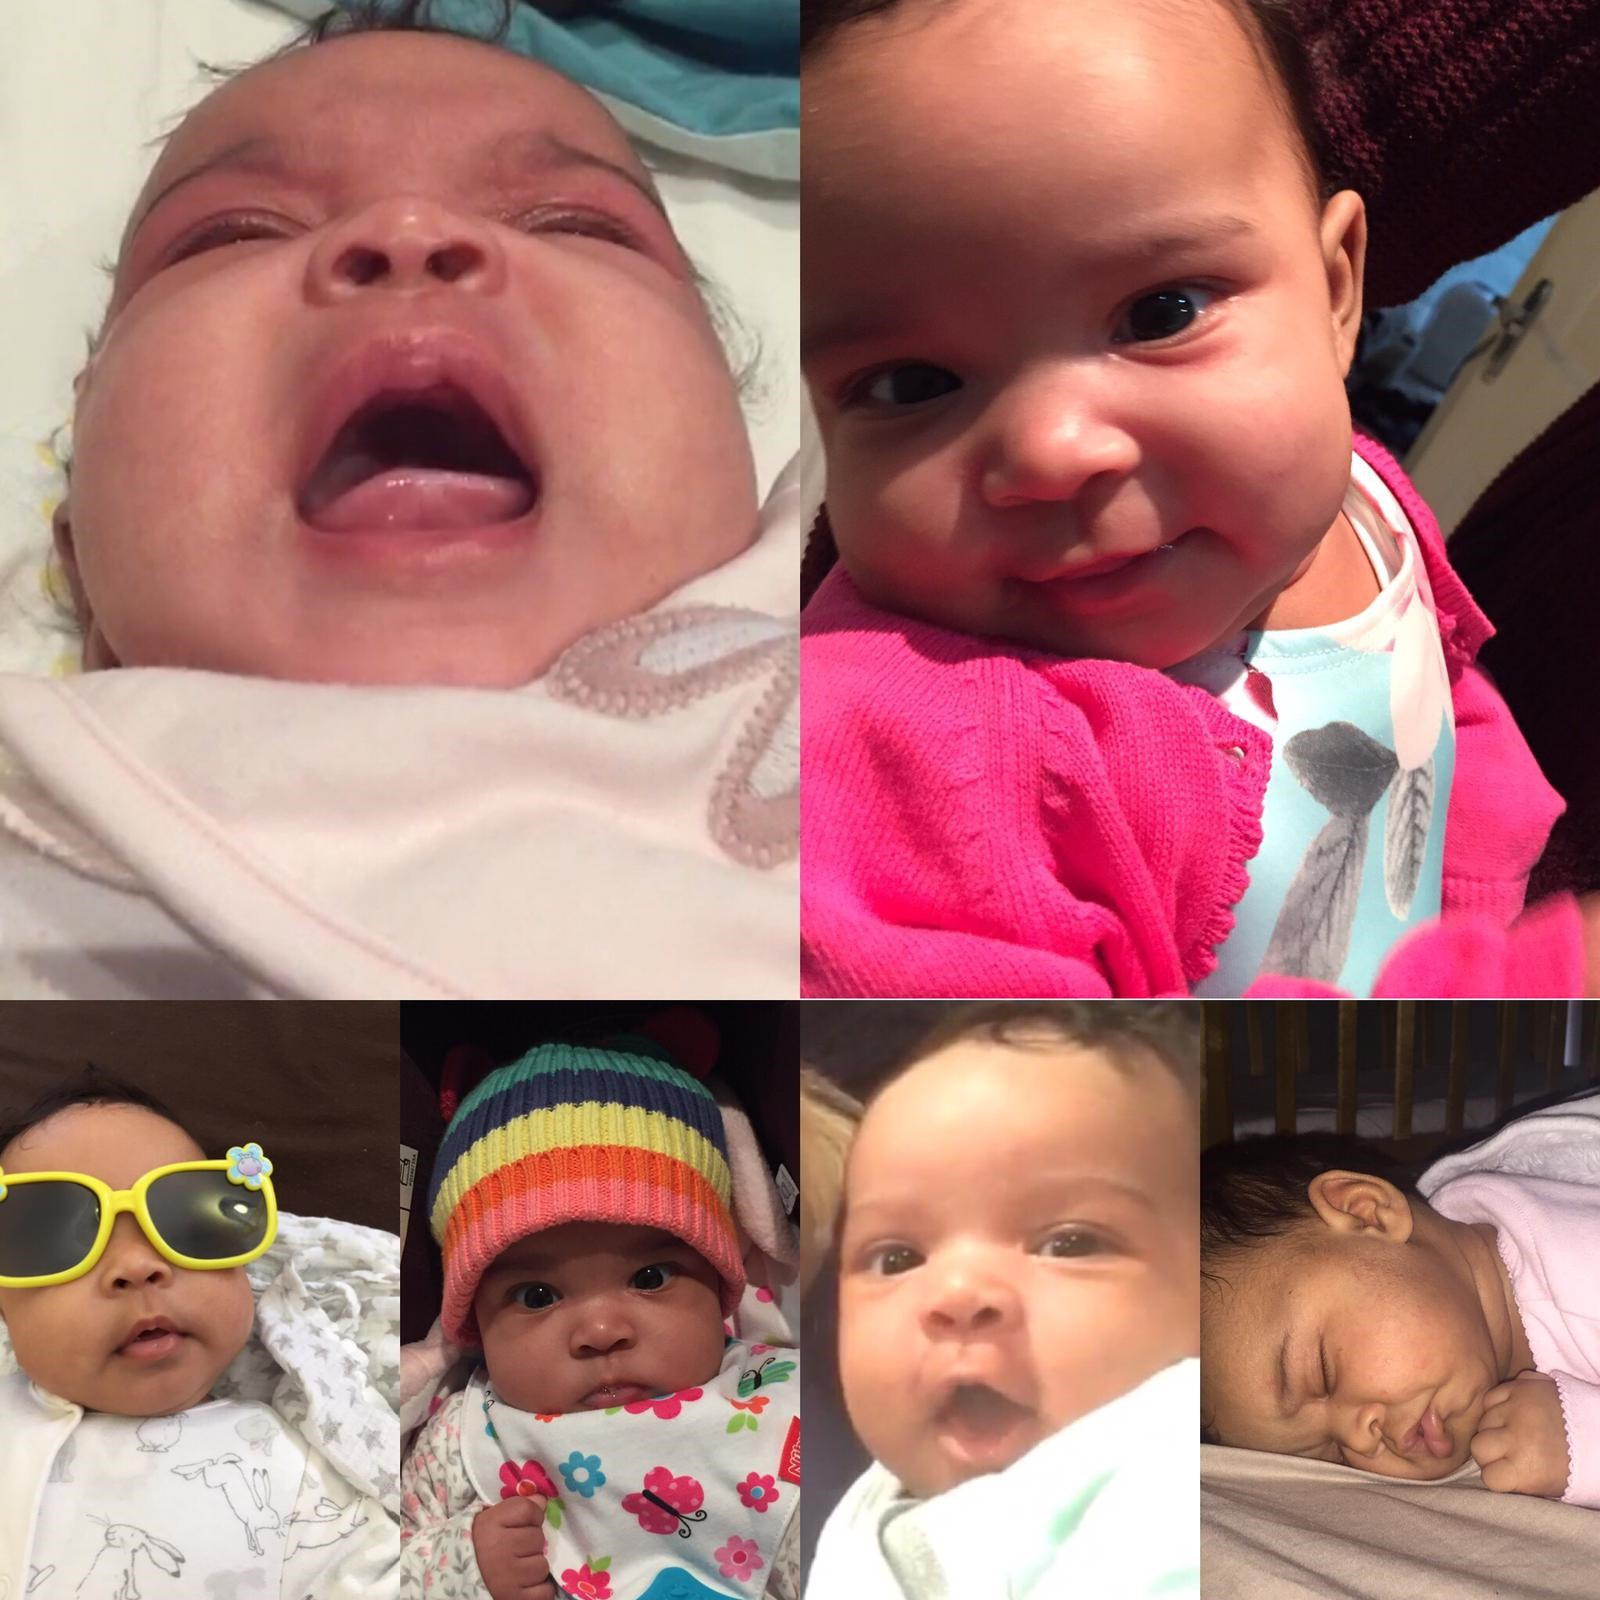 Babies are unpredictable - so many emotions!